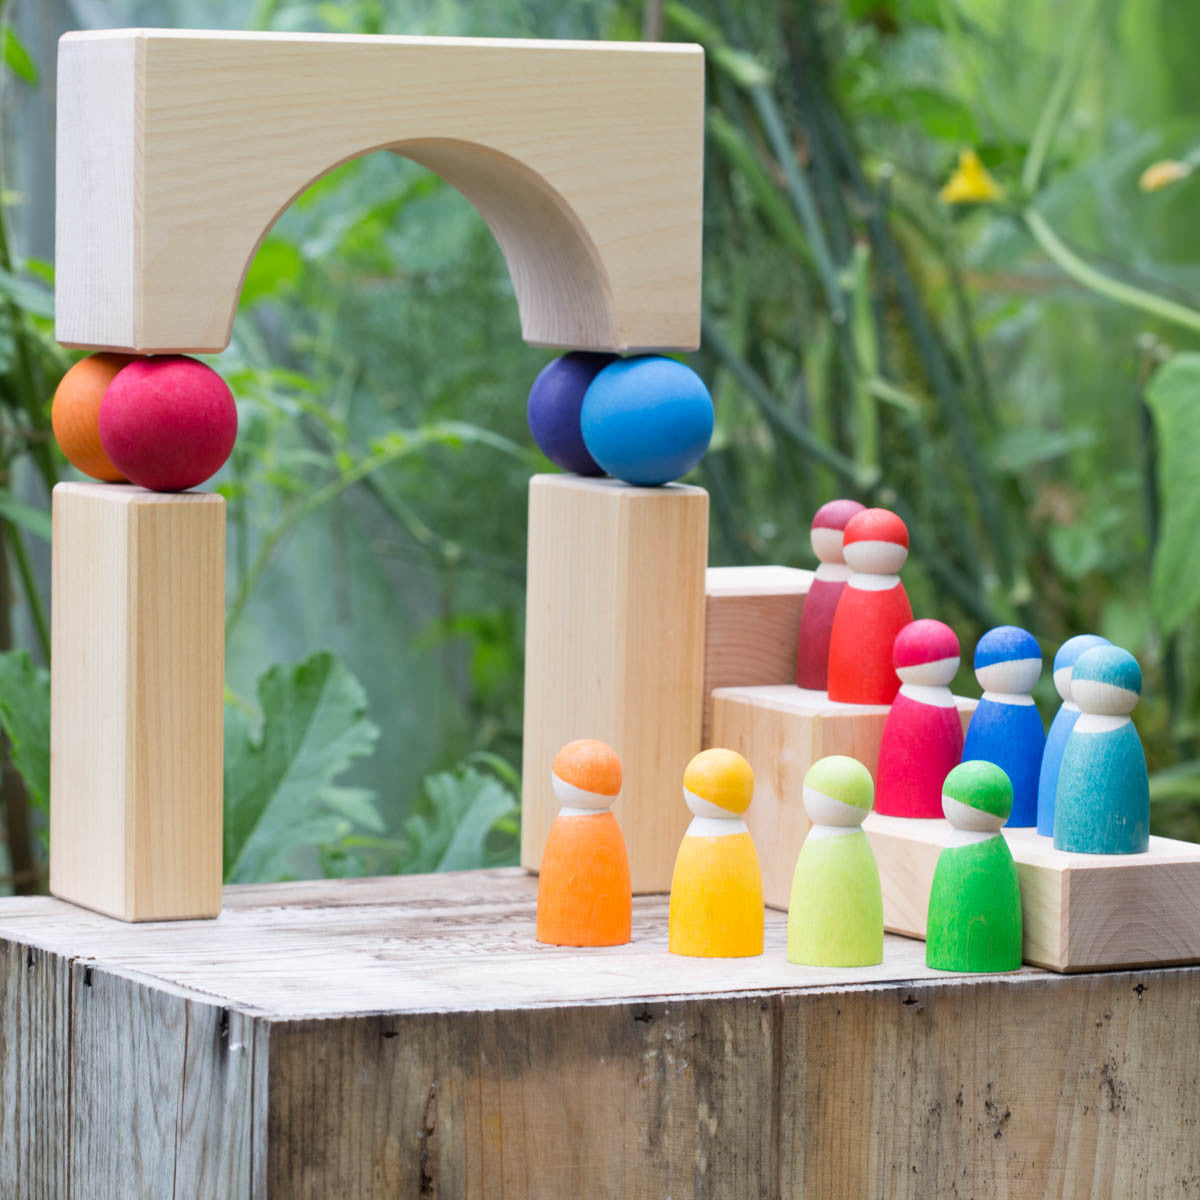 A simple guide to choosing the right toy